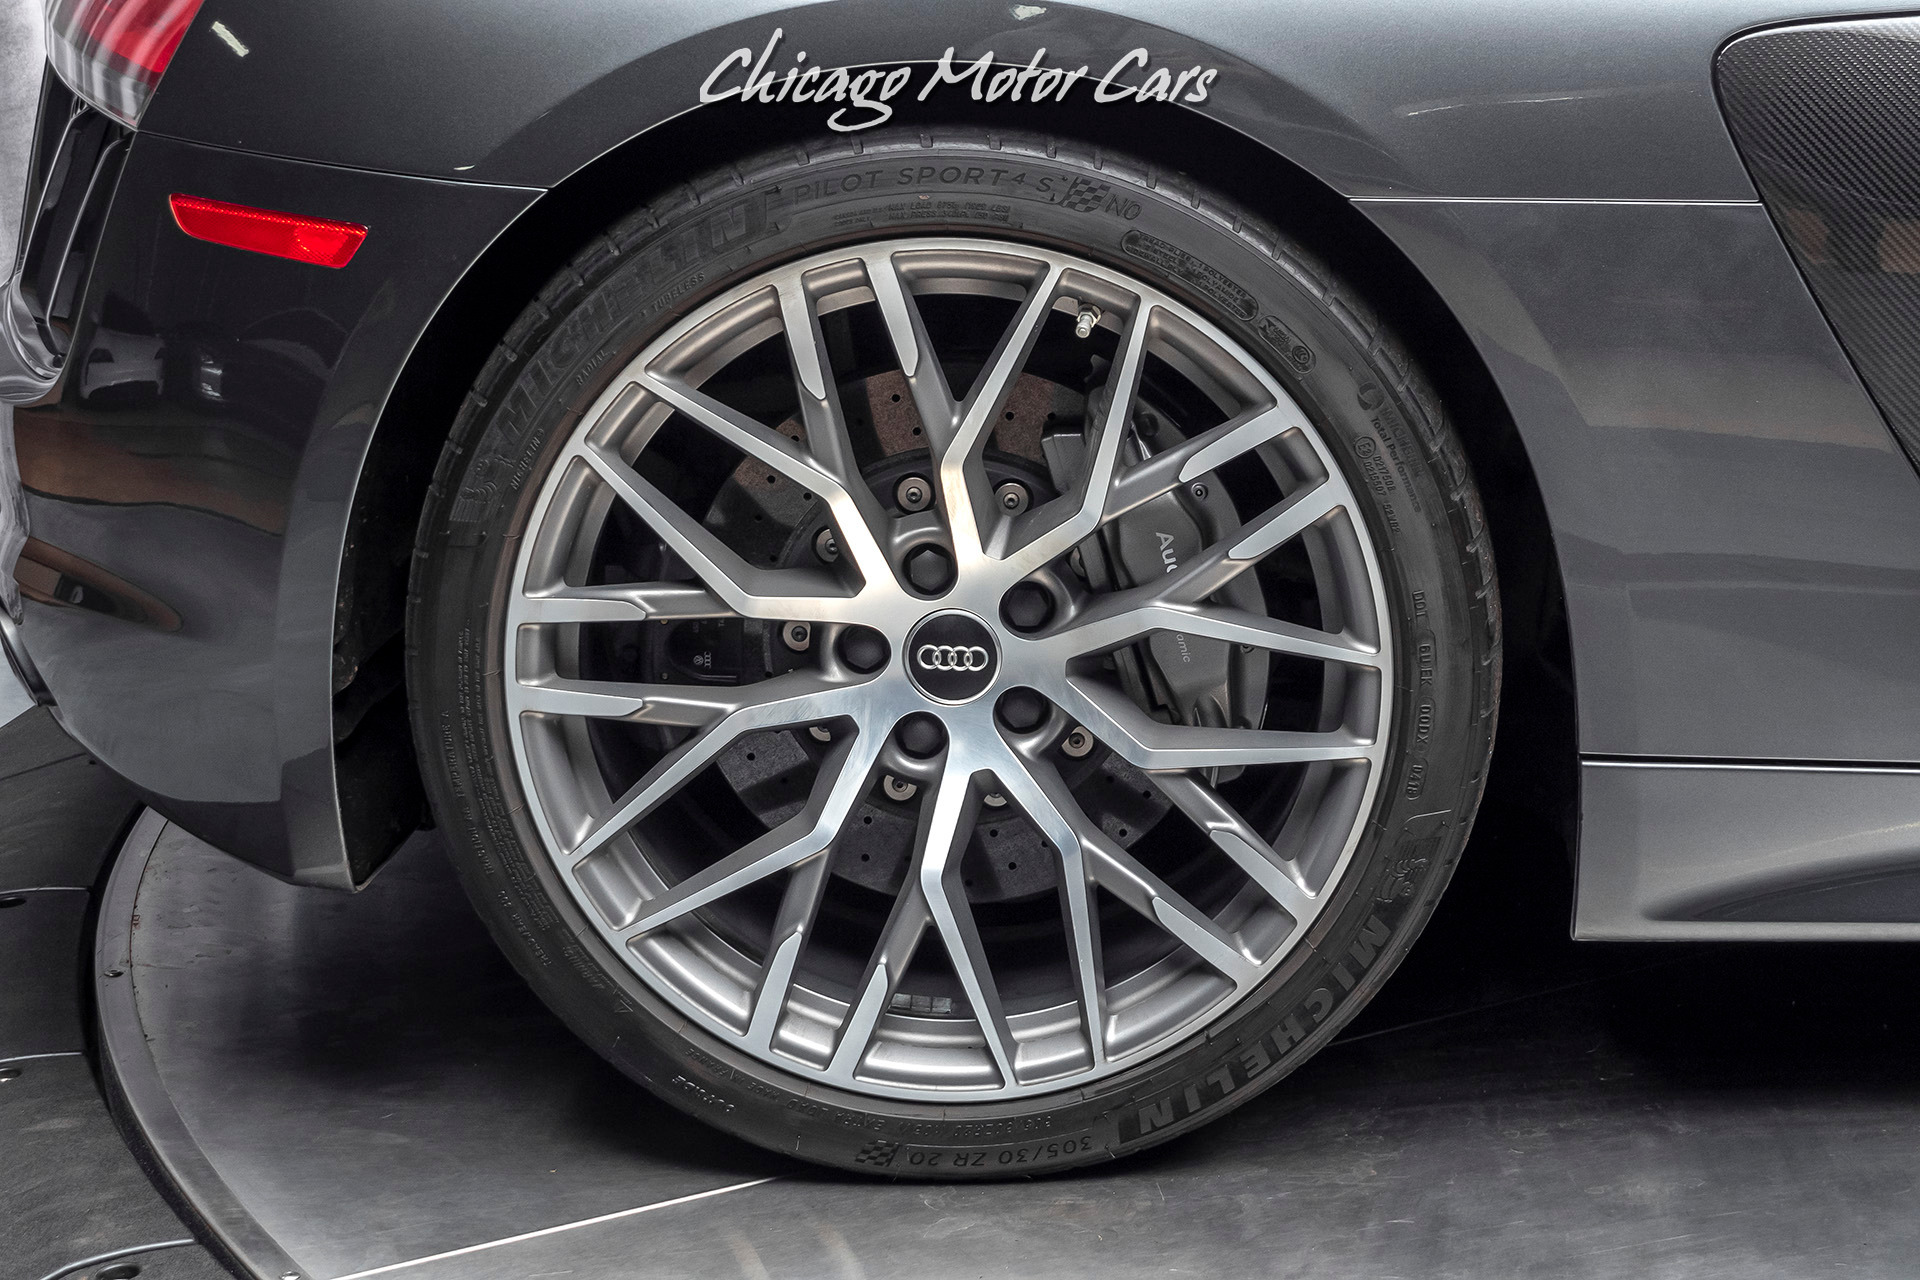 Used-2017-Audi-R8-52-quattro-V10-Plus-Coupe-CARBON-FIBER-20-INCH-WHEELS